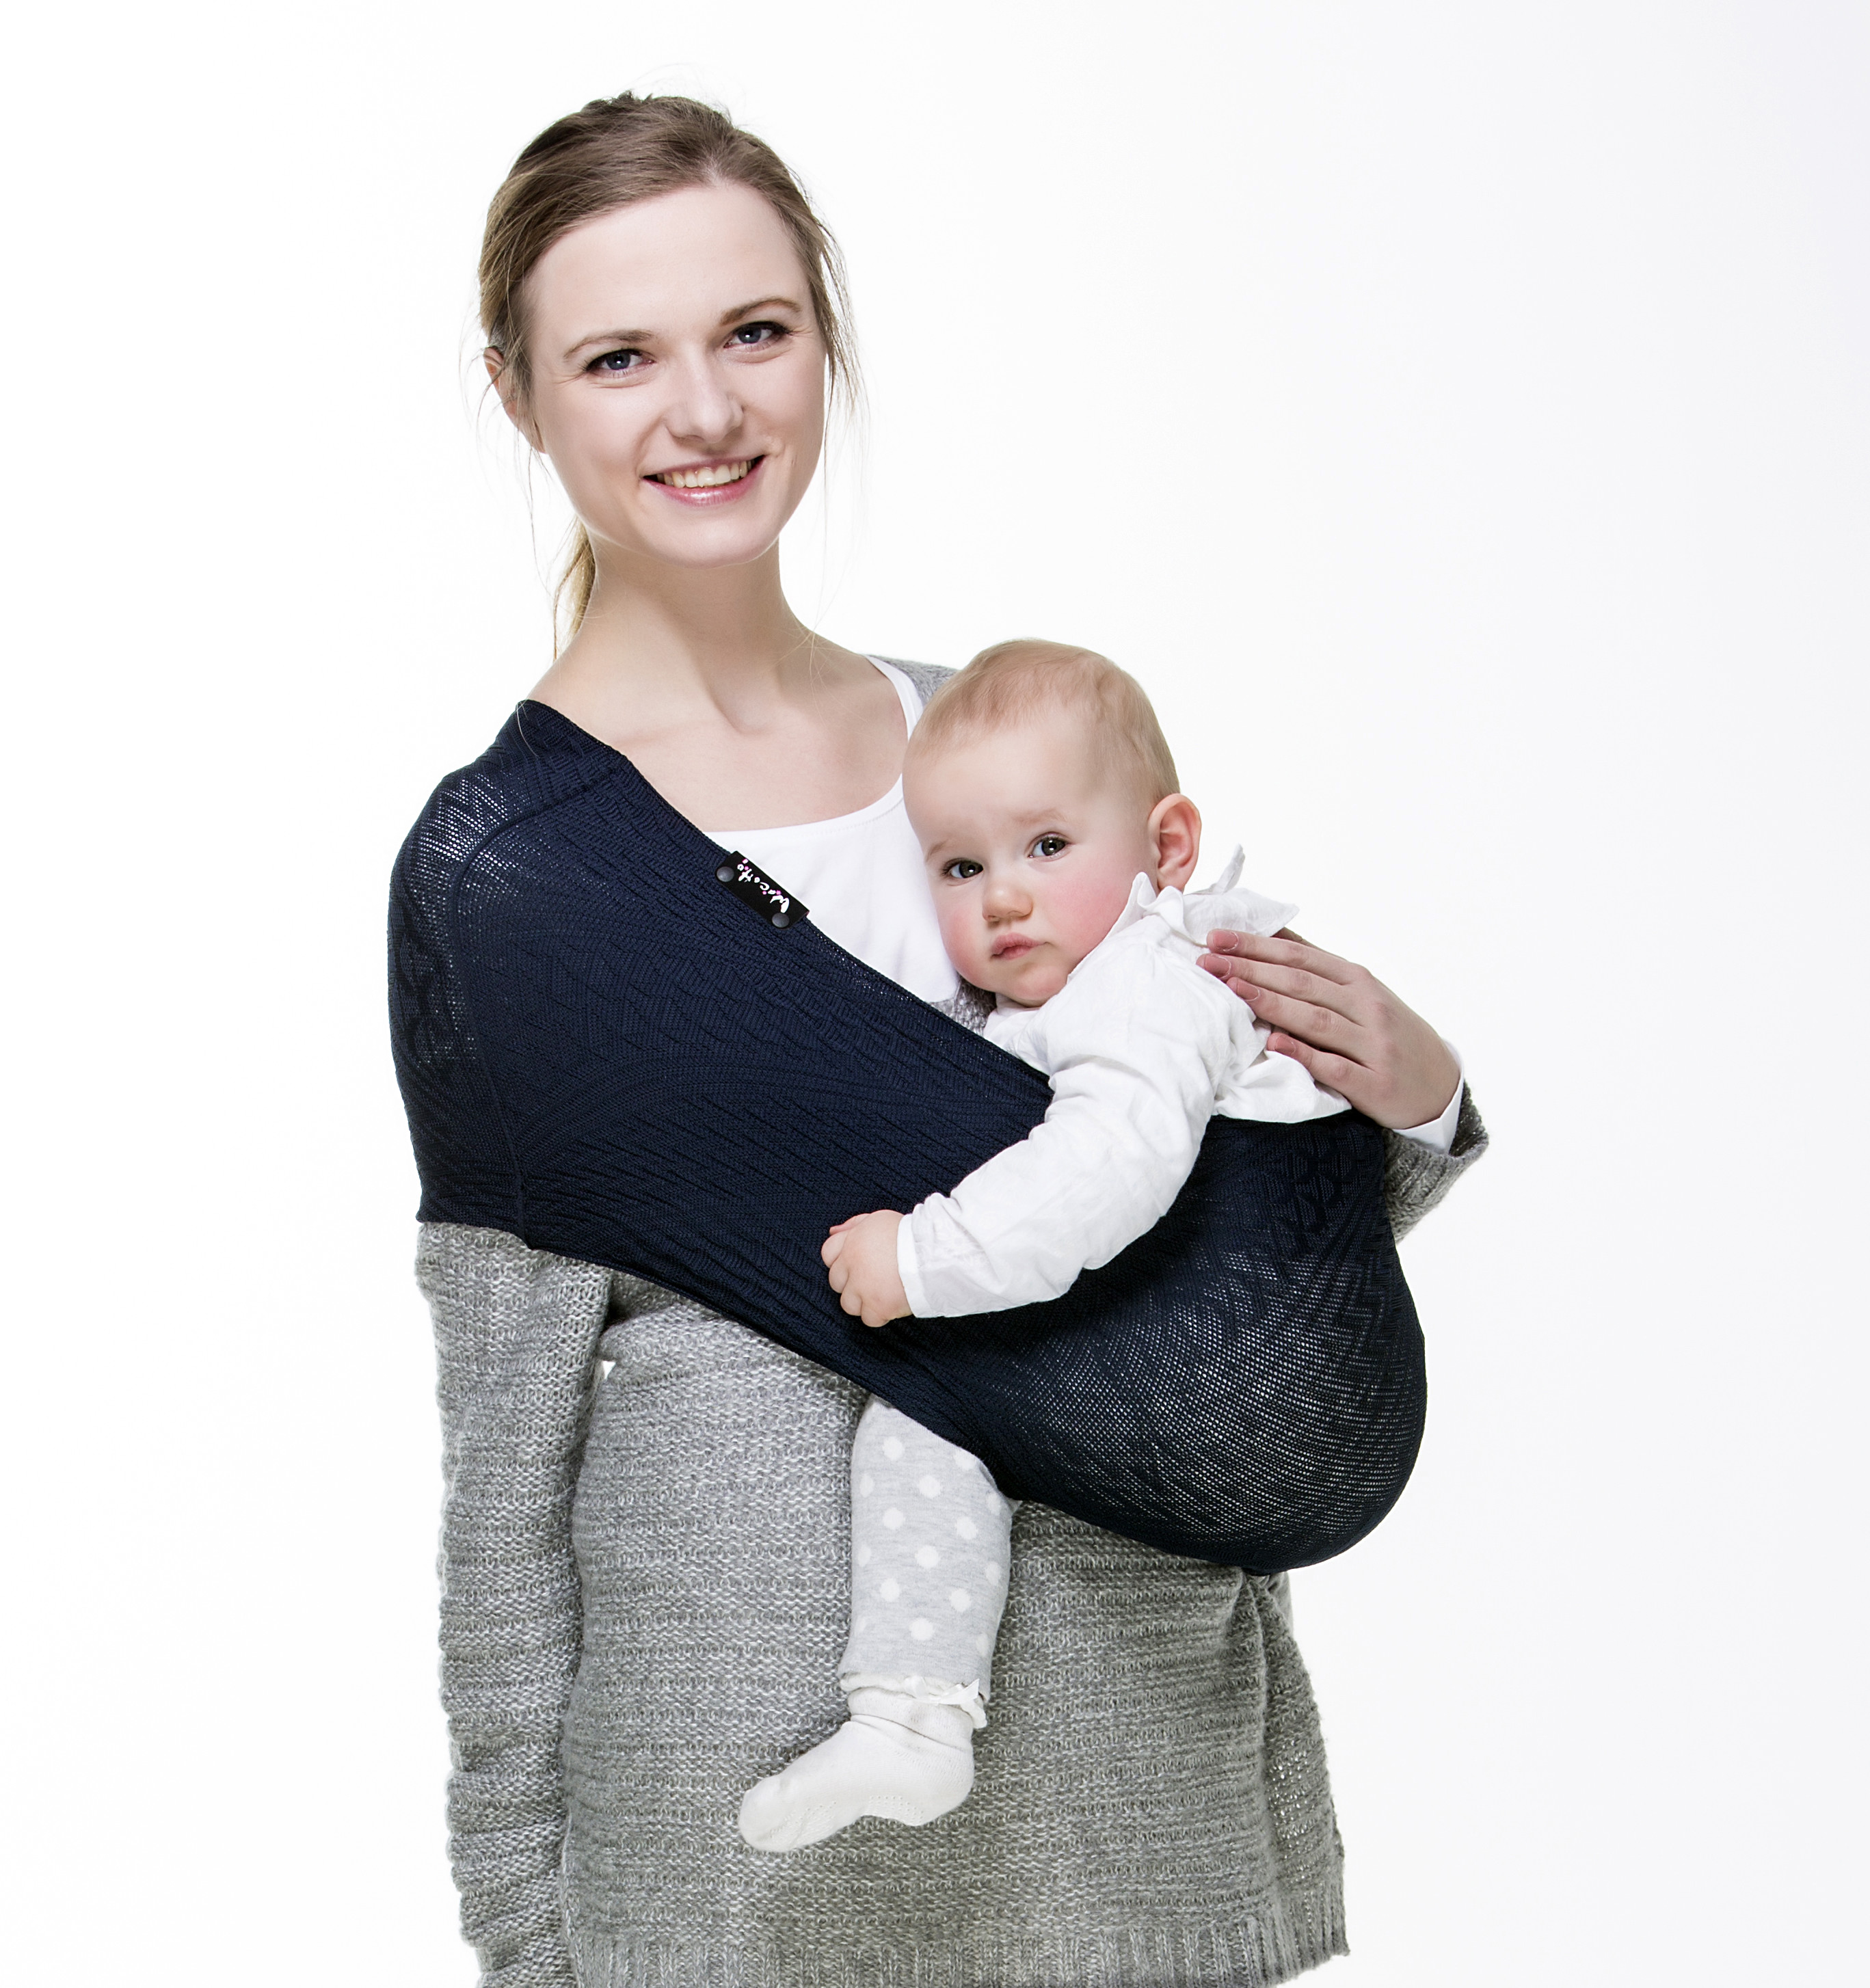 wacotto  compact baby carrier  lucky baby japan  babyrug - wacotto baby sling carrier is designed for comfort simplicity securityand ease but it is not just a baby carrier it can also be used as a comfyand